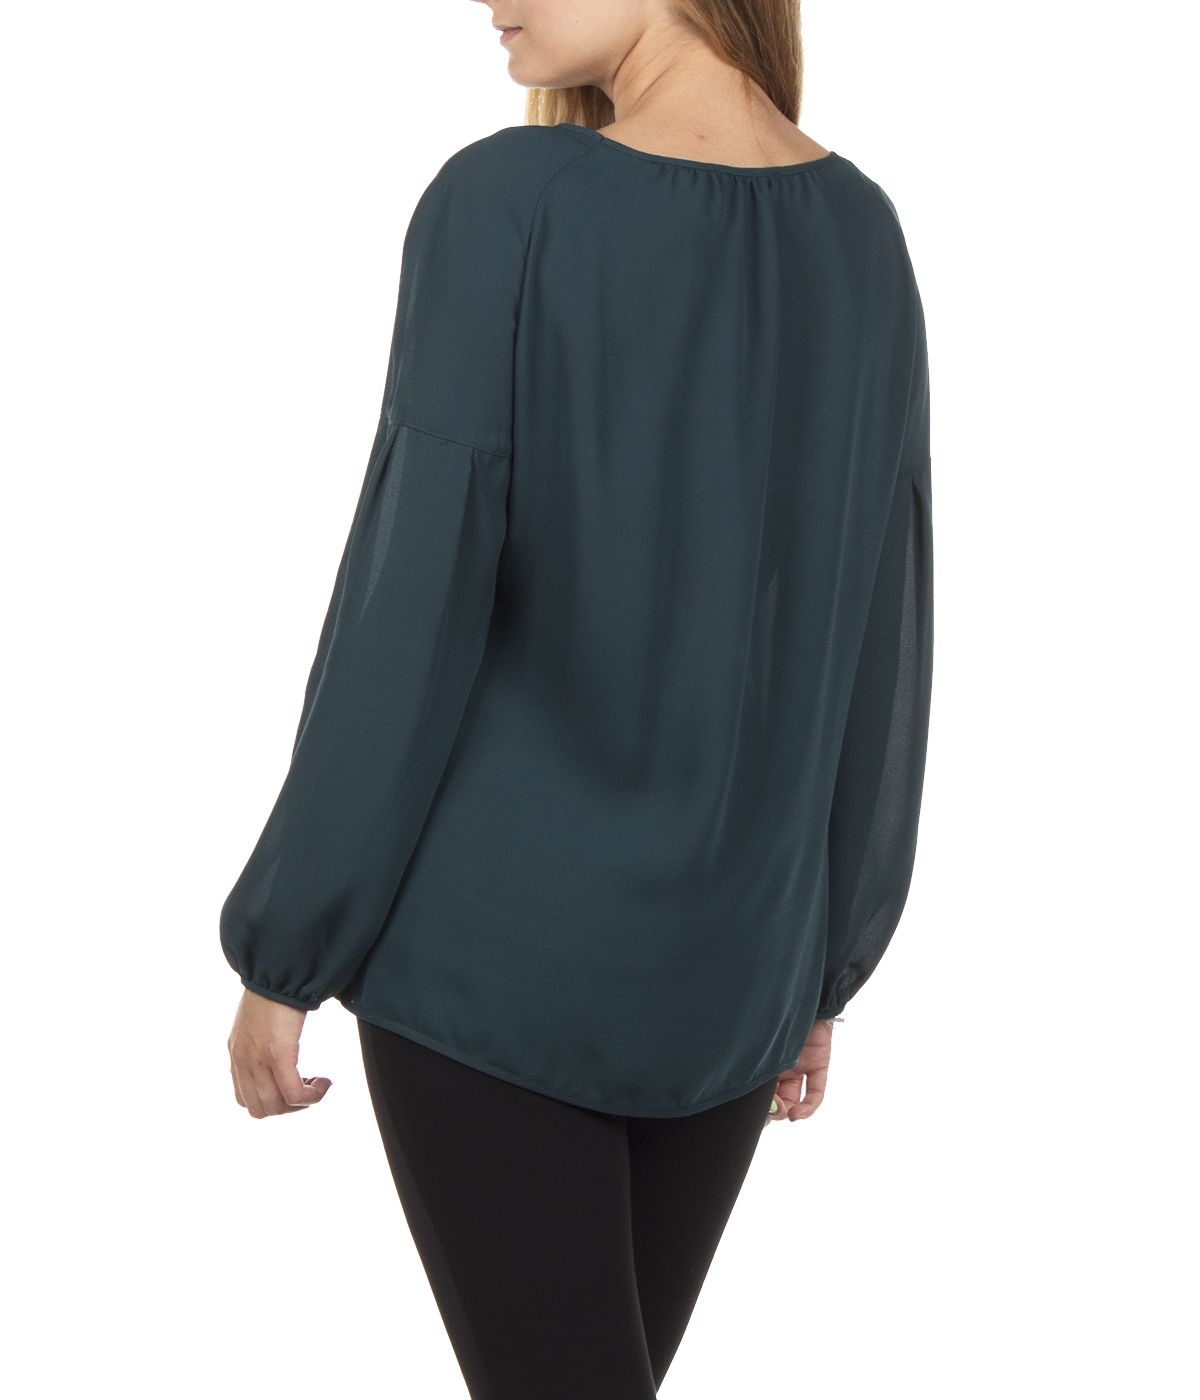 GREEN LONG SLEEVED BLOUSE WITH ROUND NECK 3